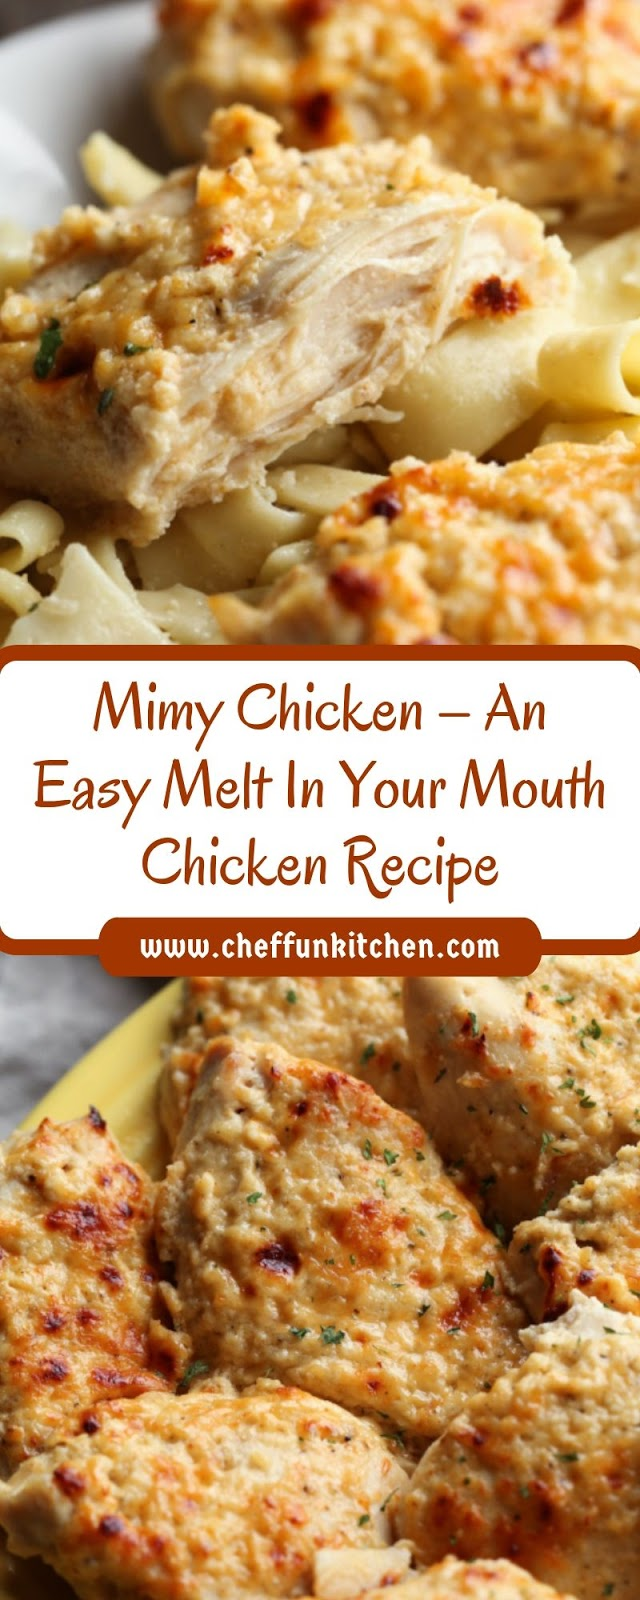 Mimy Chicken – An Easy Melt In Your Mouth Chicken Recipe